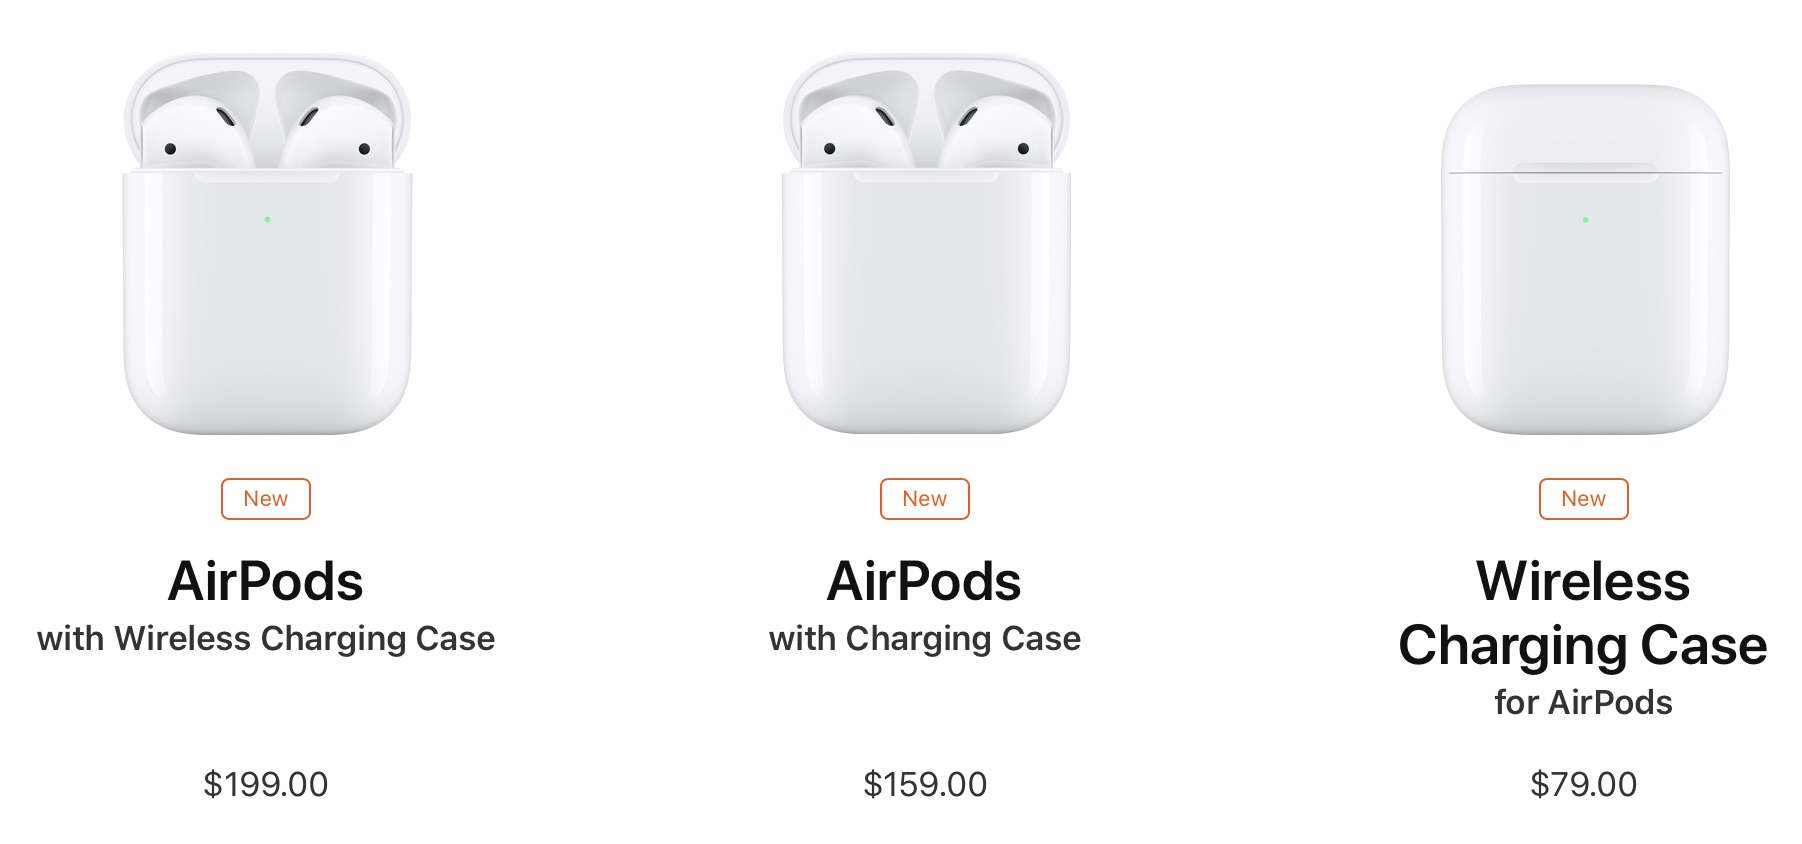 Thinking of buying AirPods 2? Here's how the new version compares to the original